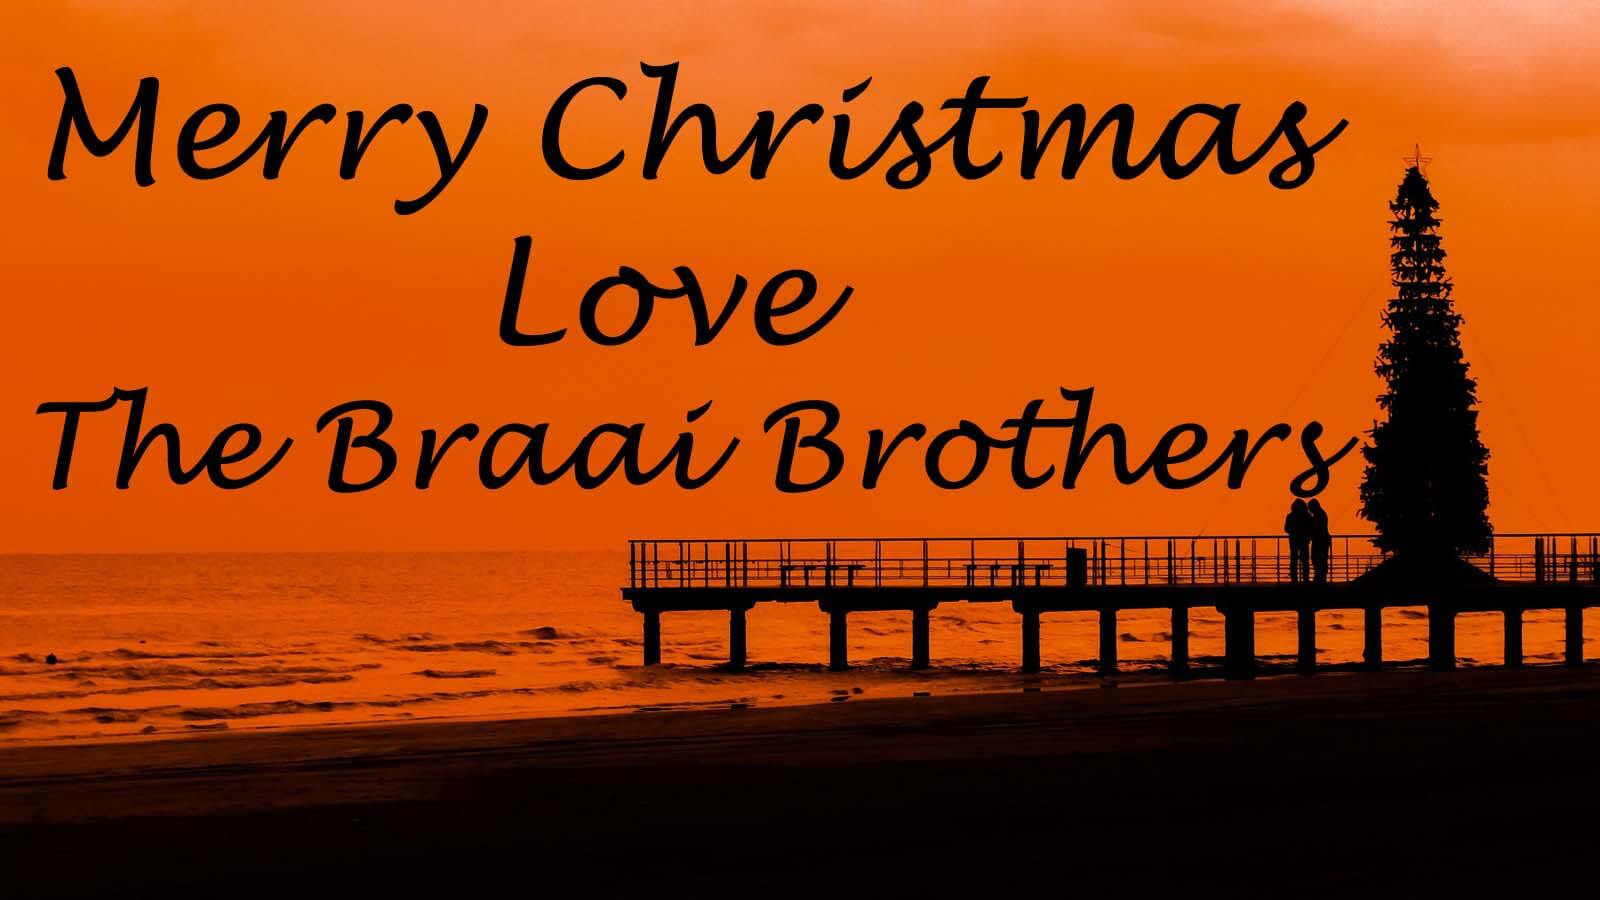 Merry Christmas From The Braai Brothers